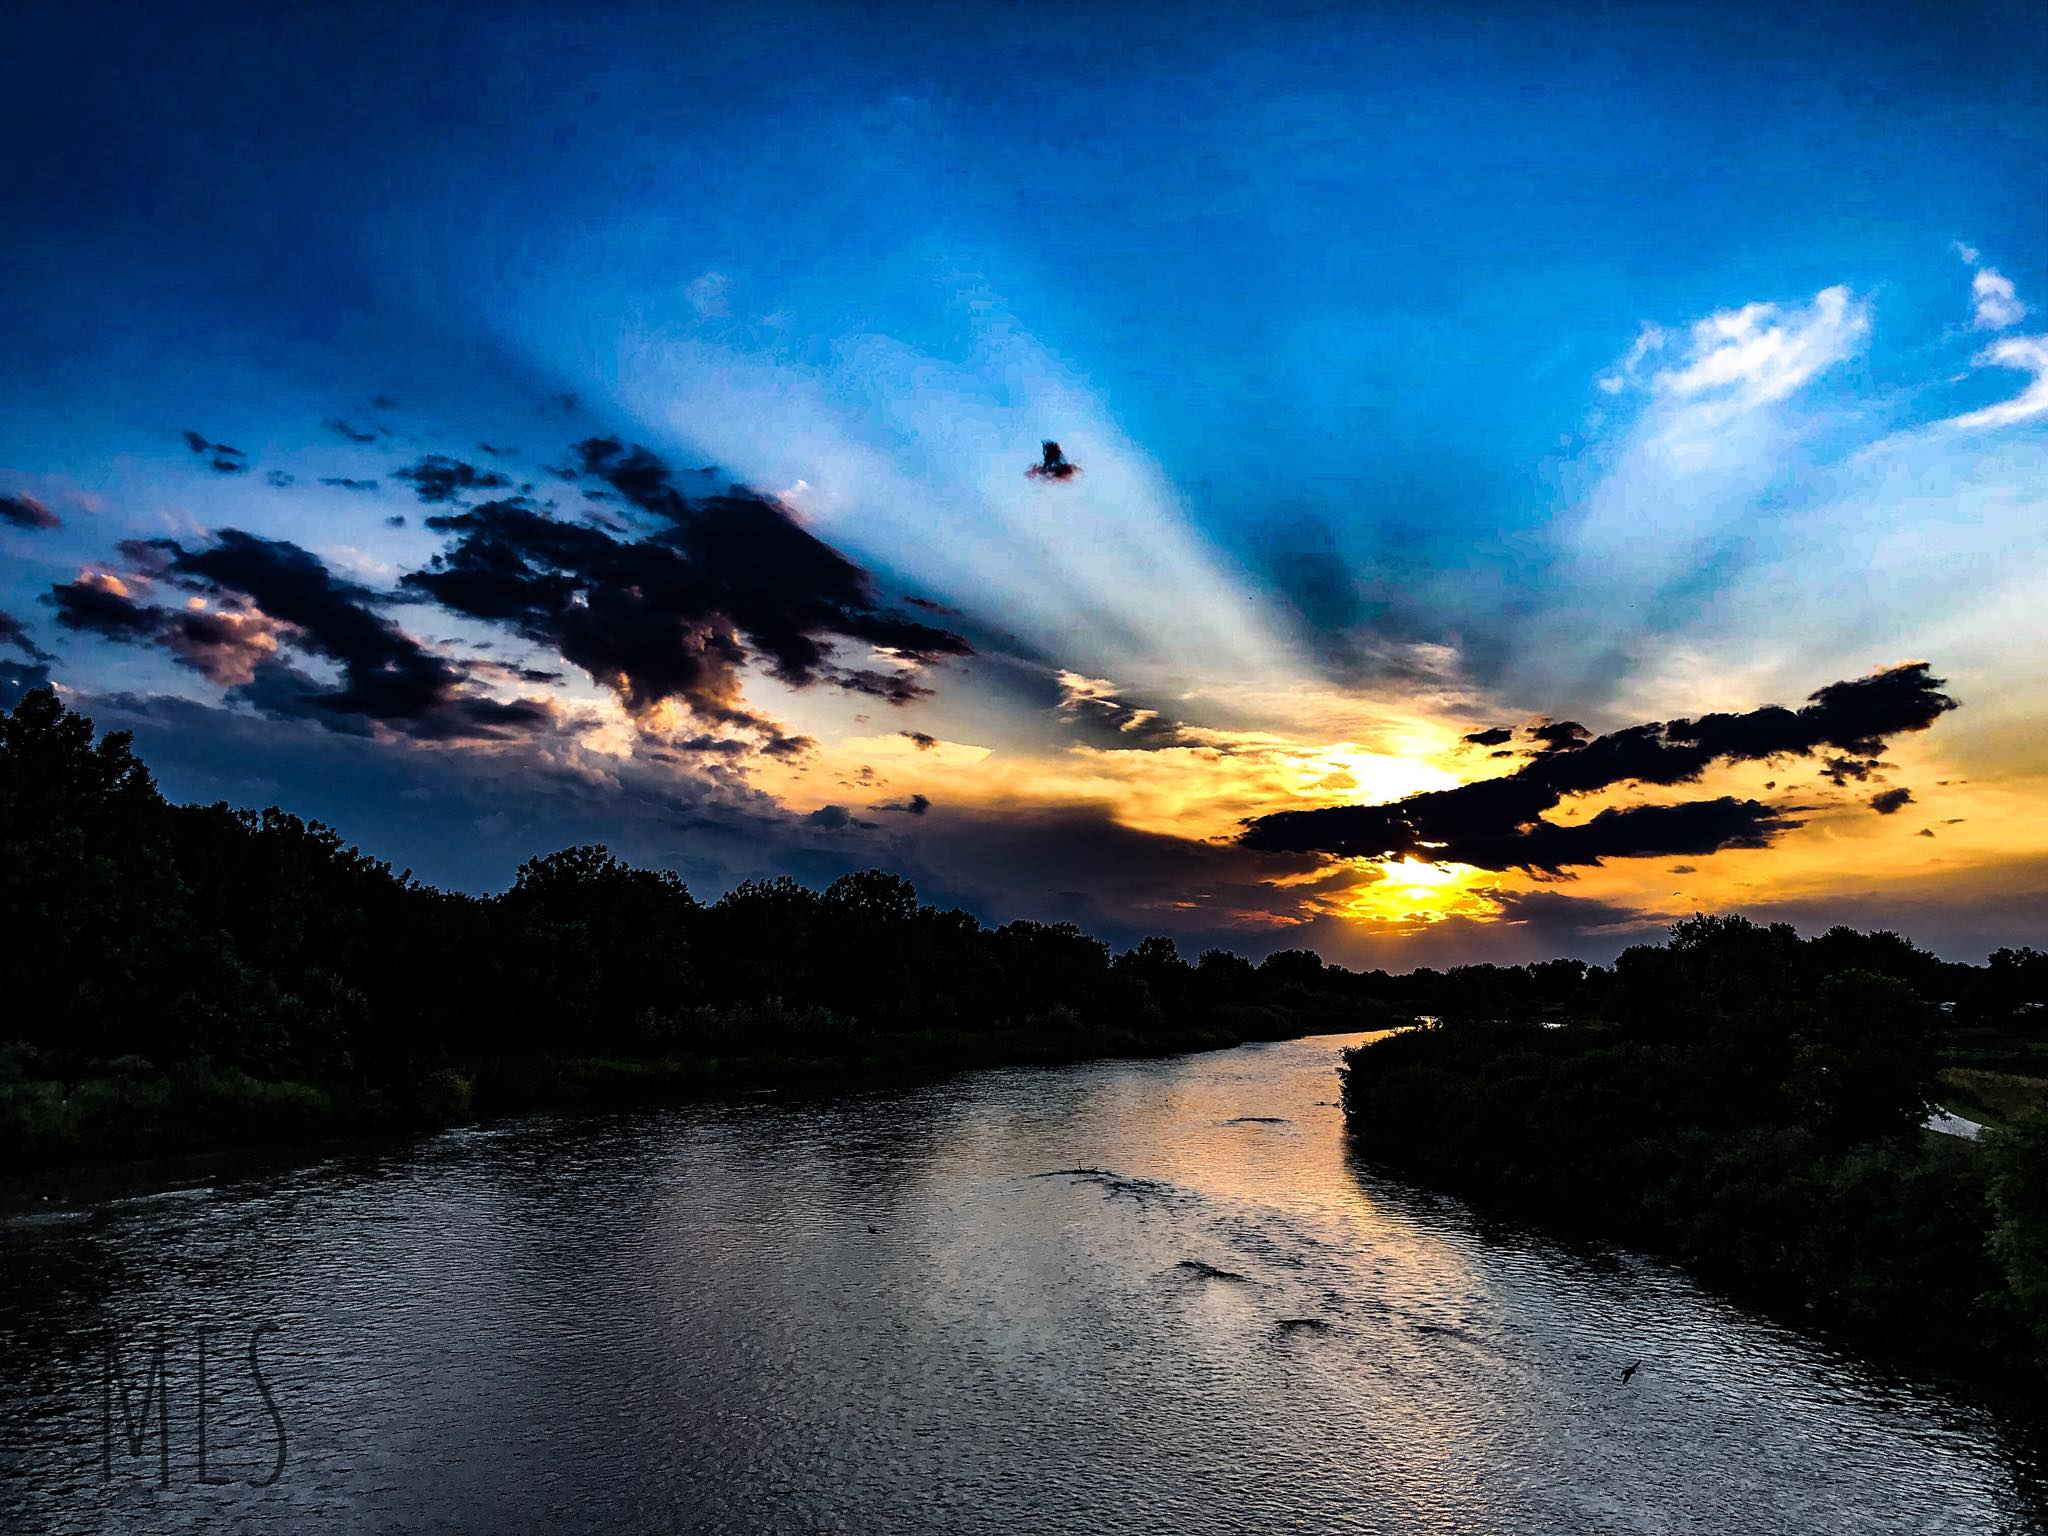 River sunset 3.jpg